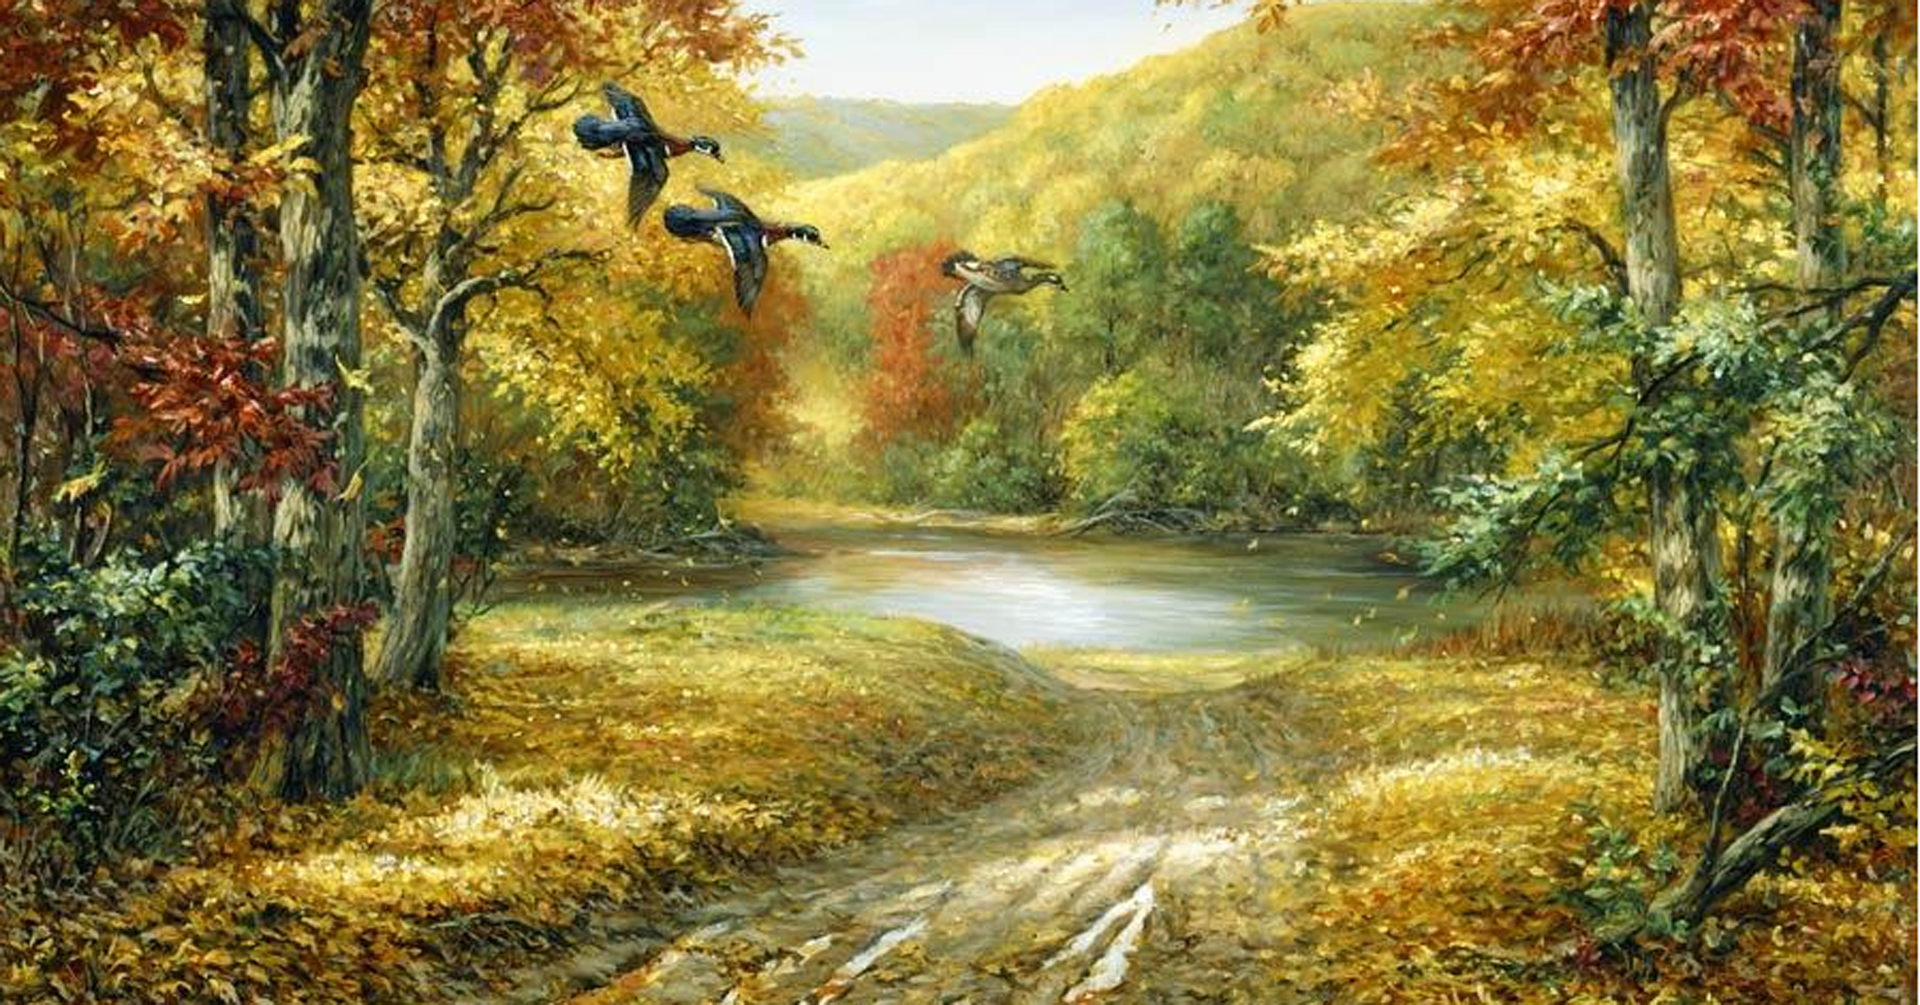 oil painting forests wallpapers images photos picture download